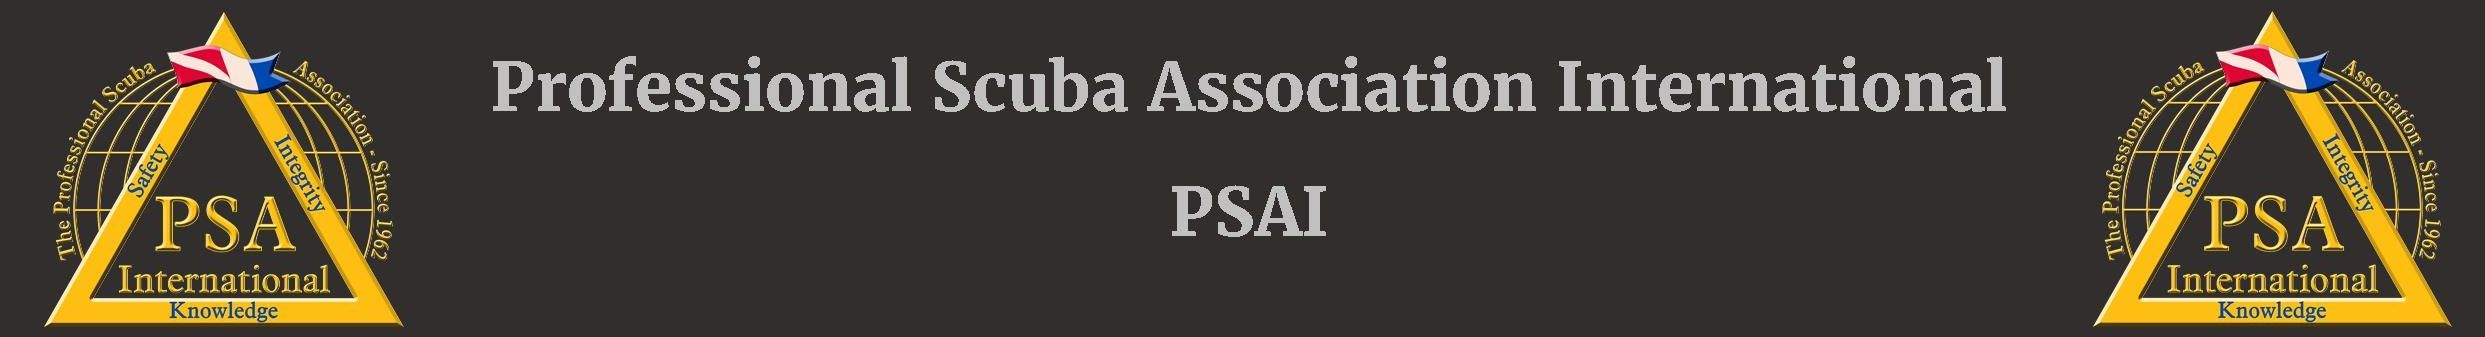 Professional Scuba Association International PSAI